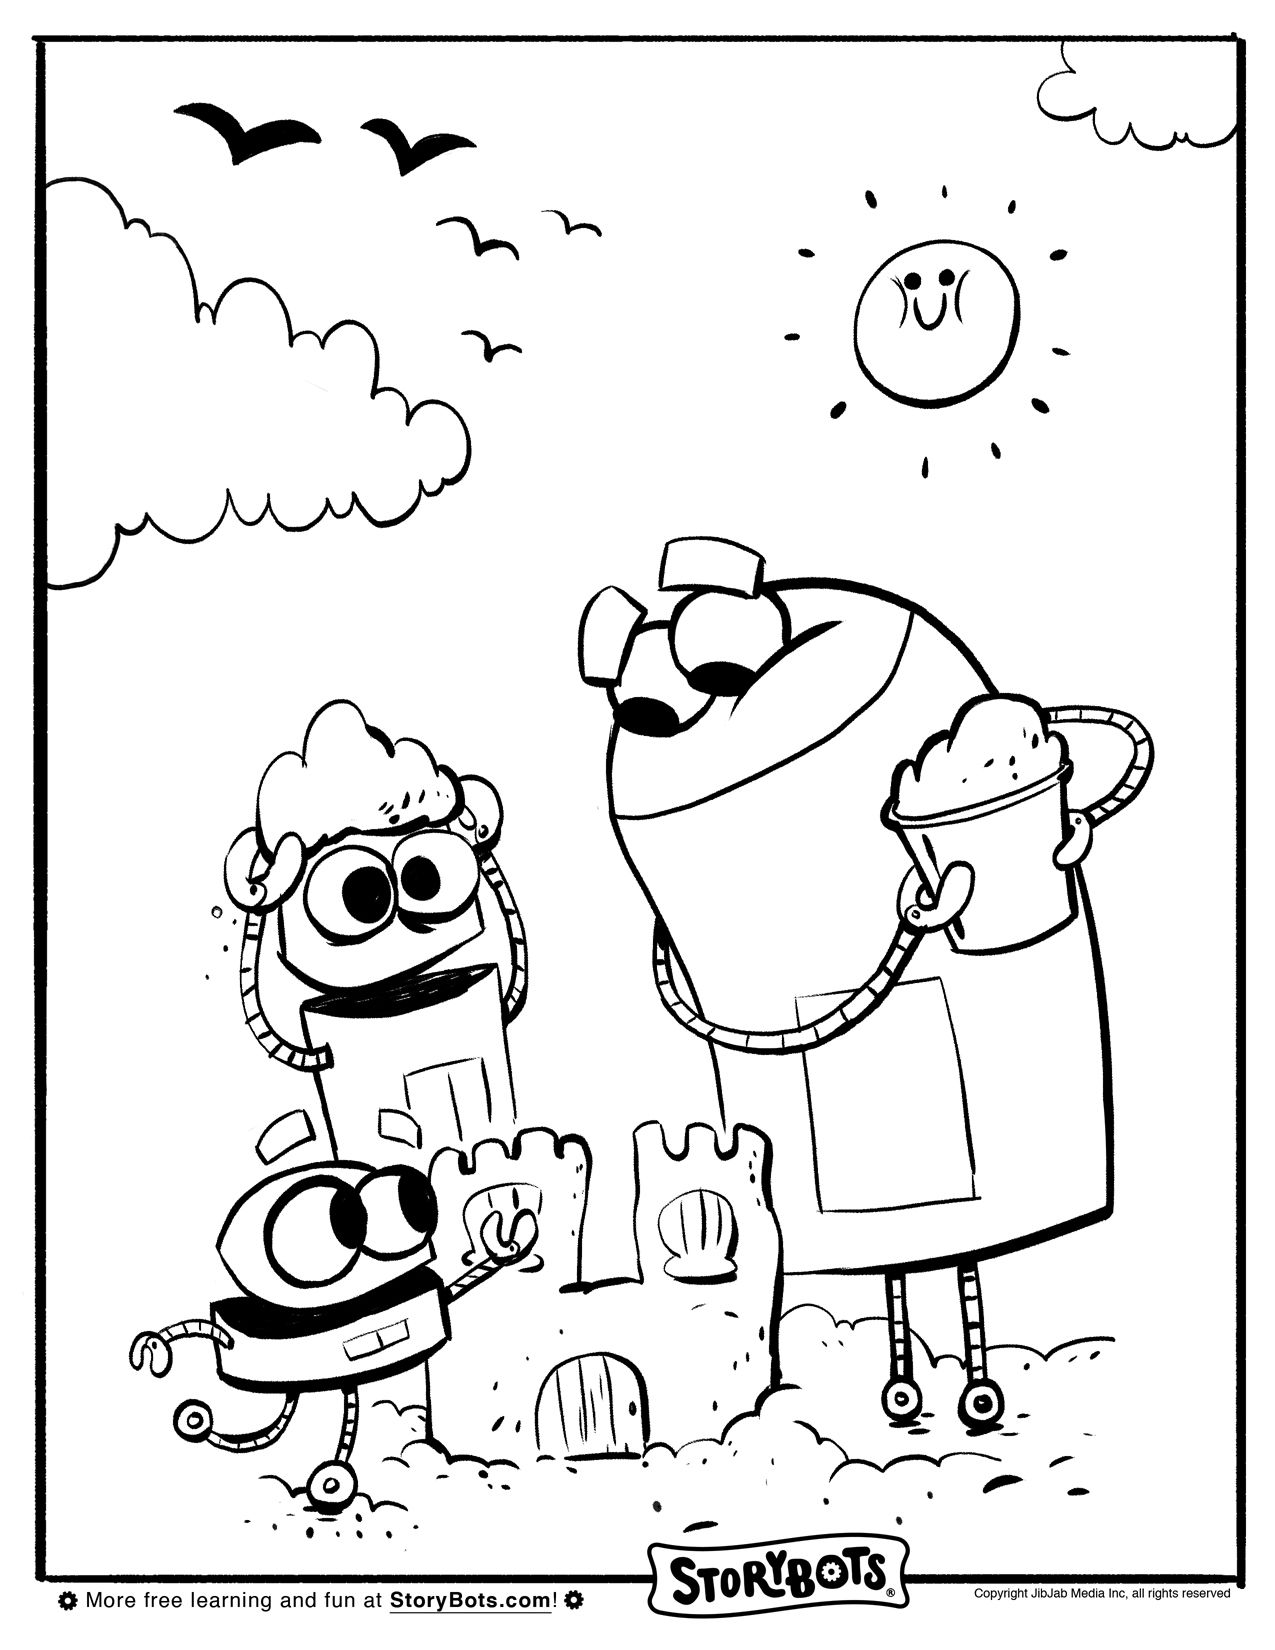 Storybots Sandcastle Coloring Sheet